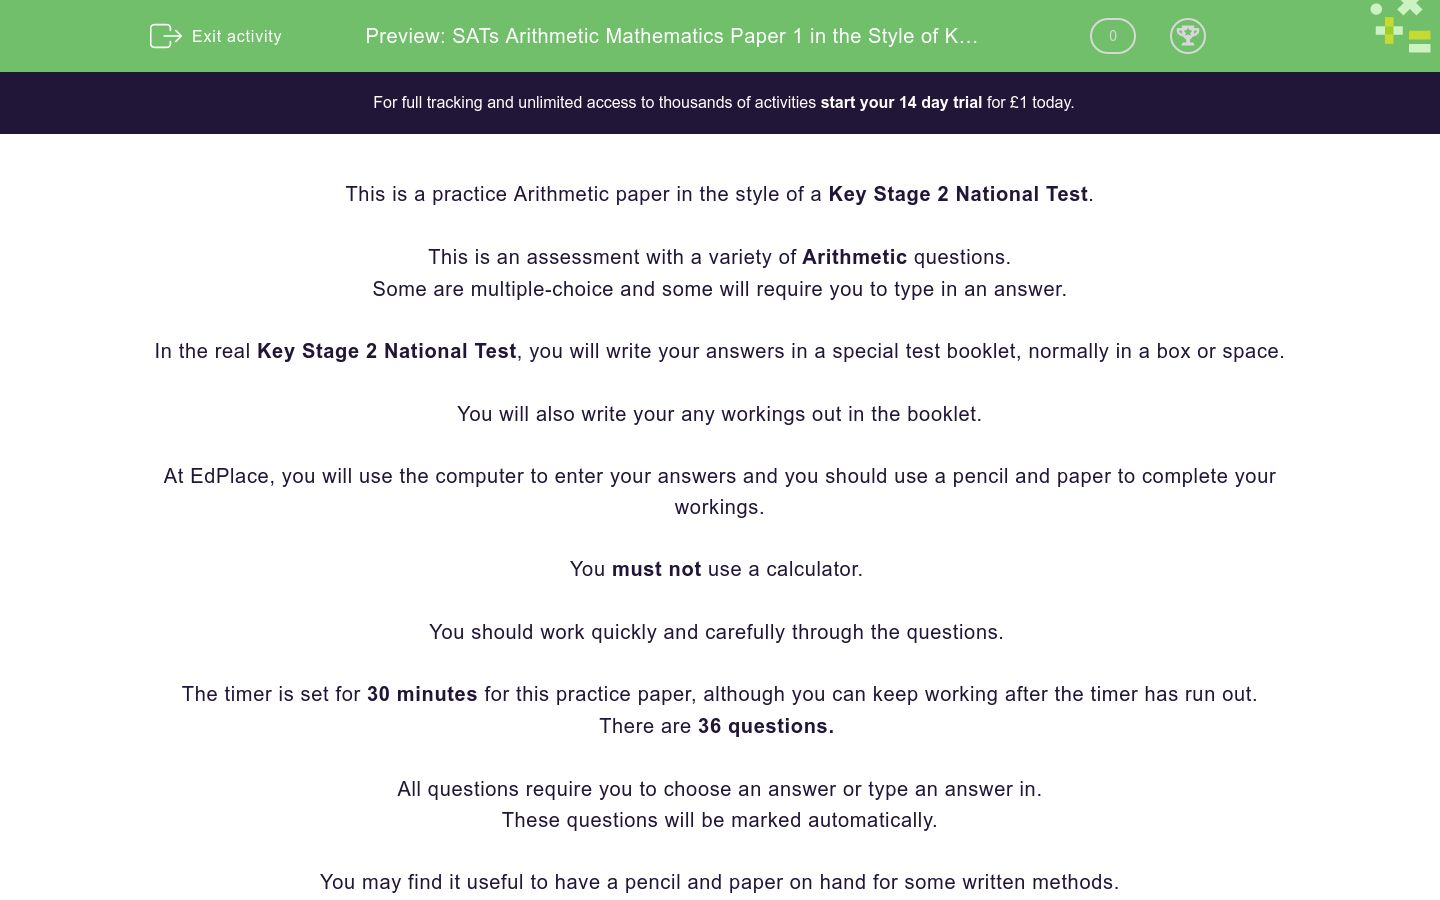 'SATs Arithmetic Mathematics Paper 1 in the Style of Key Stage 2 National Tests (Practice 2)' worksheet